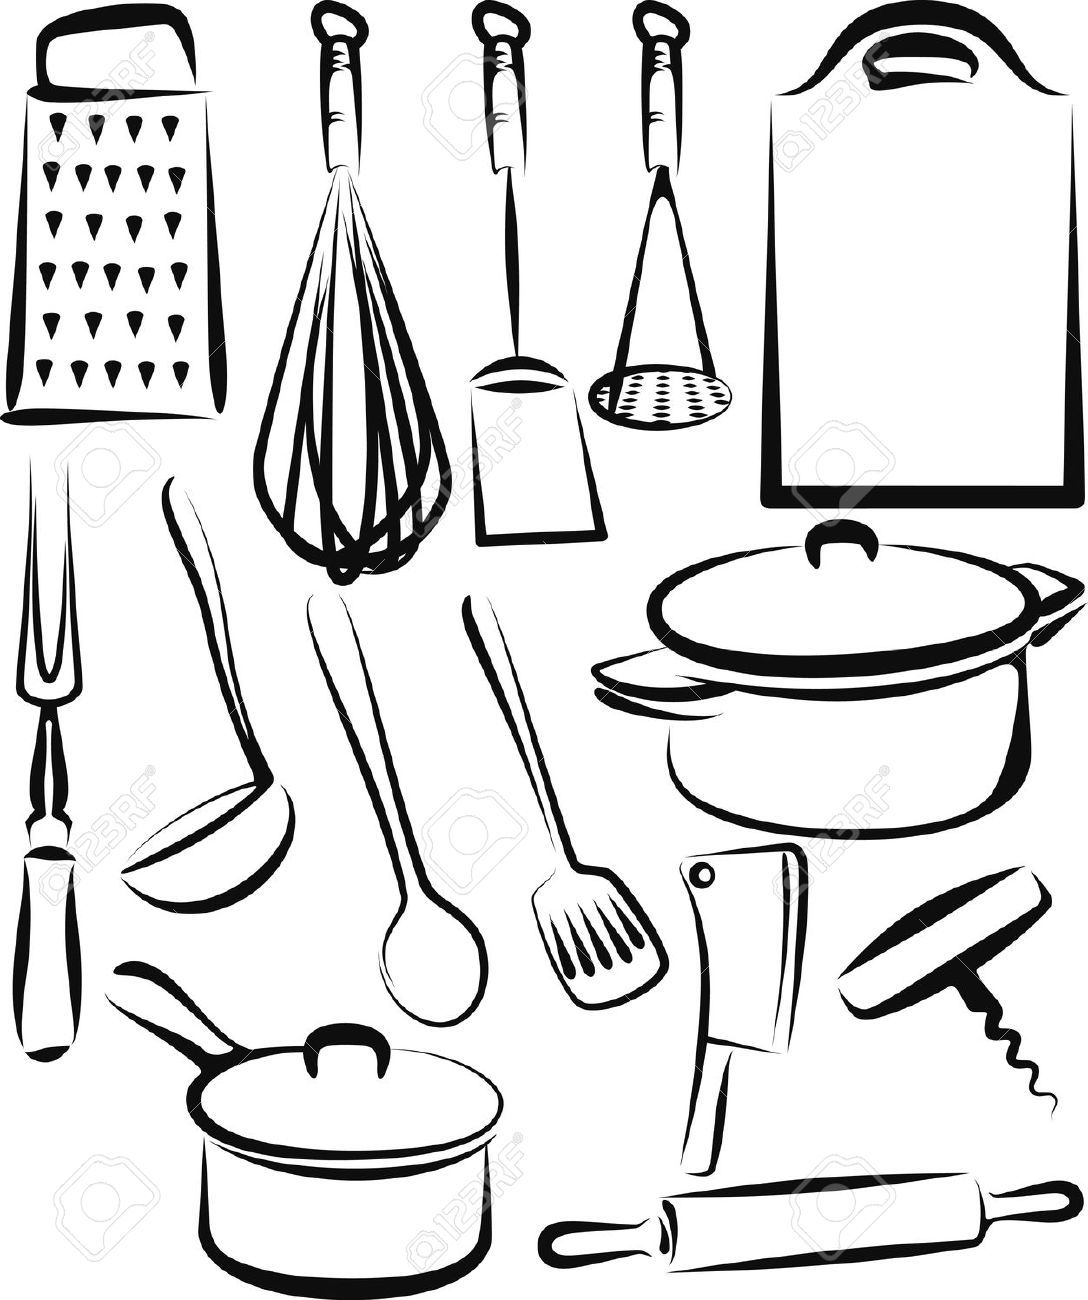 Kitchen Utensil Royalty Free Cliparts, Vectors, And Stock ...